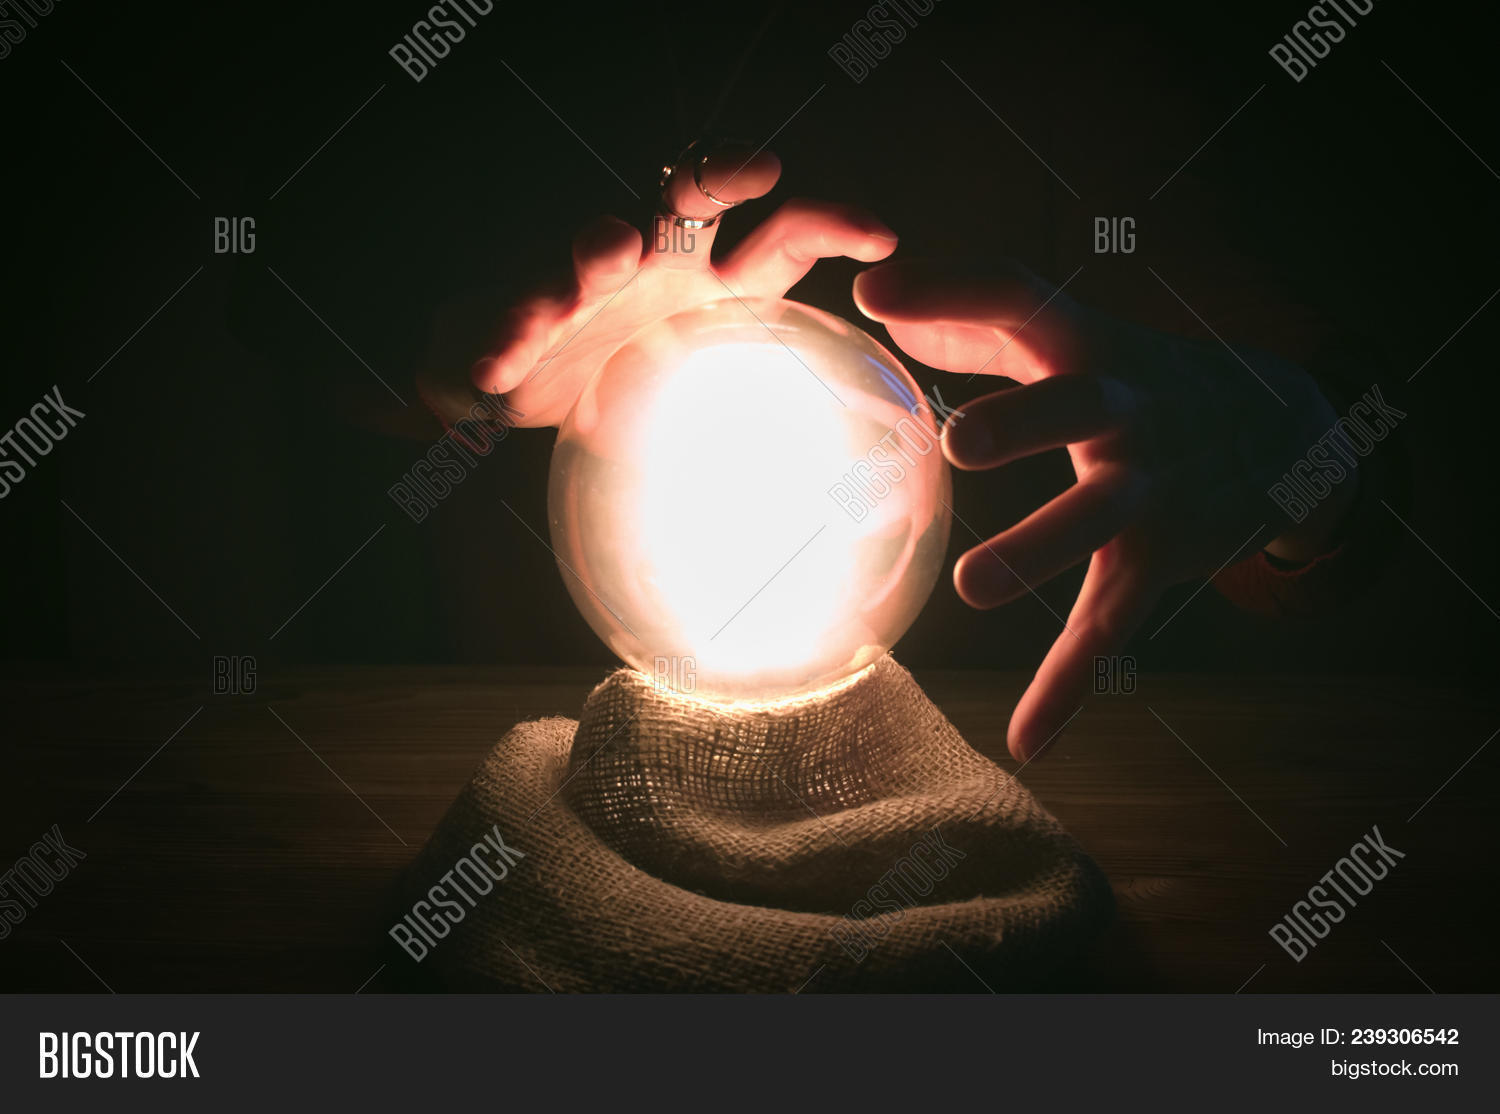 Crystal Ball Fortune Image & Photo (Free Trial) | Bigstock